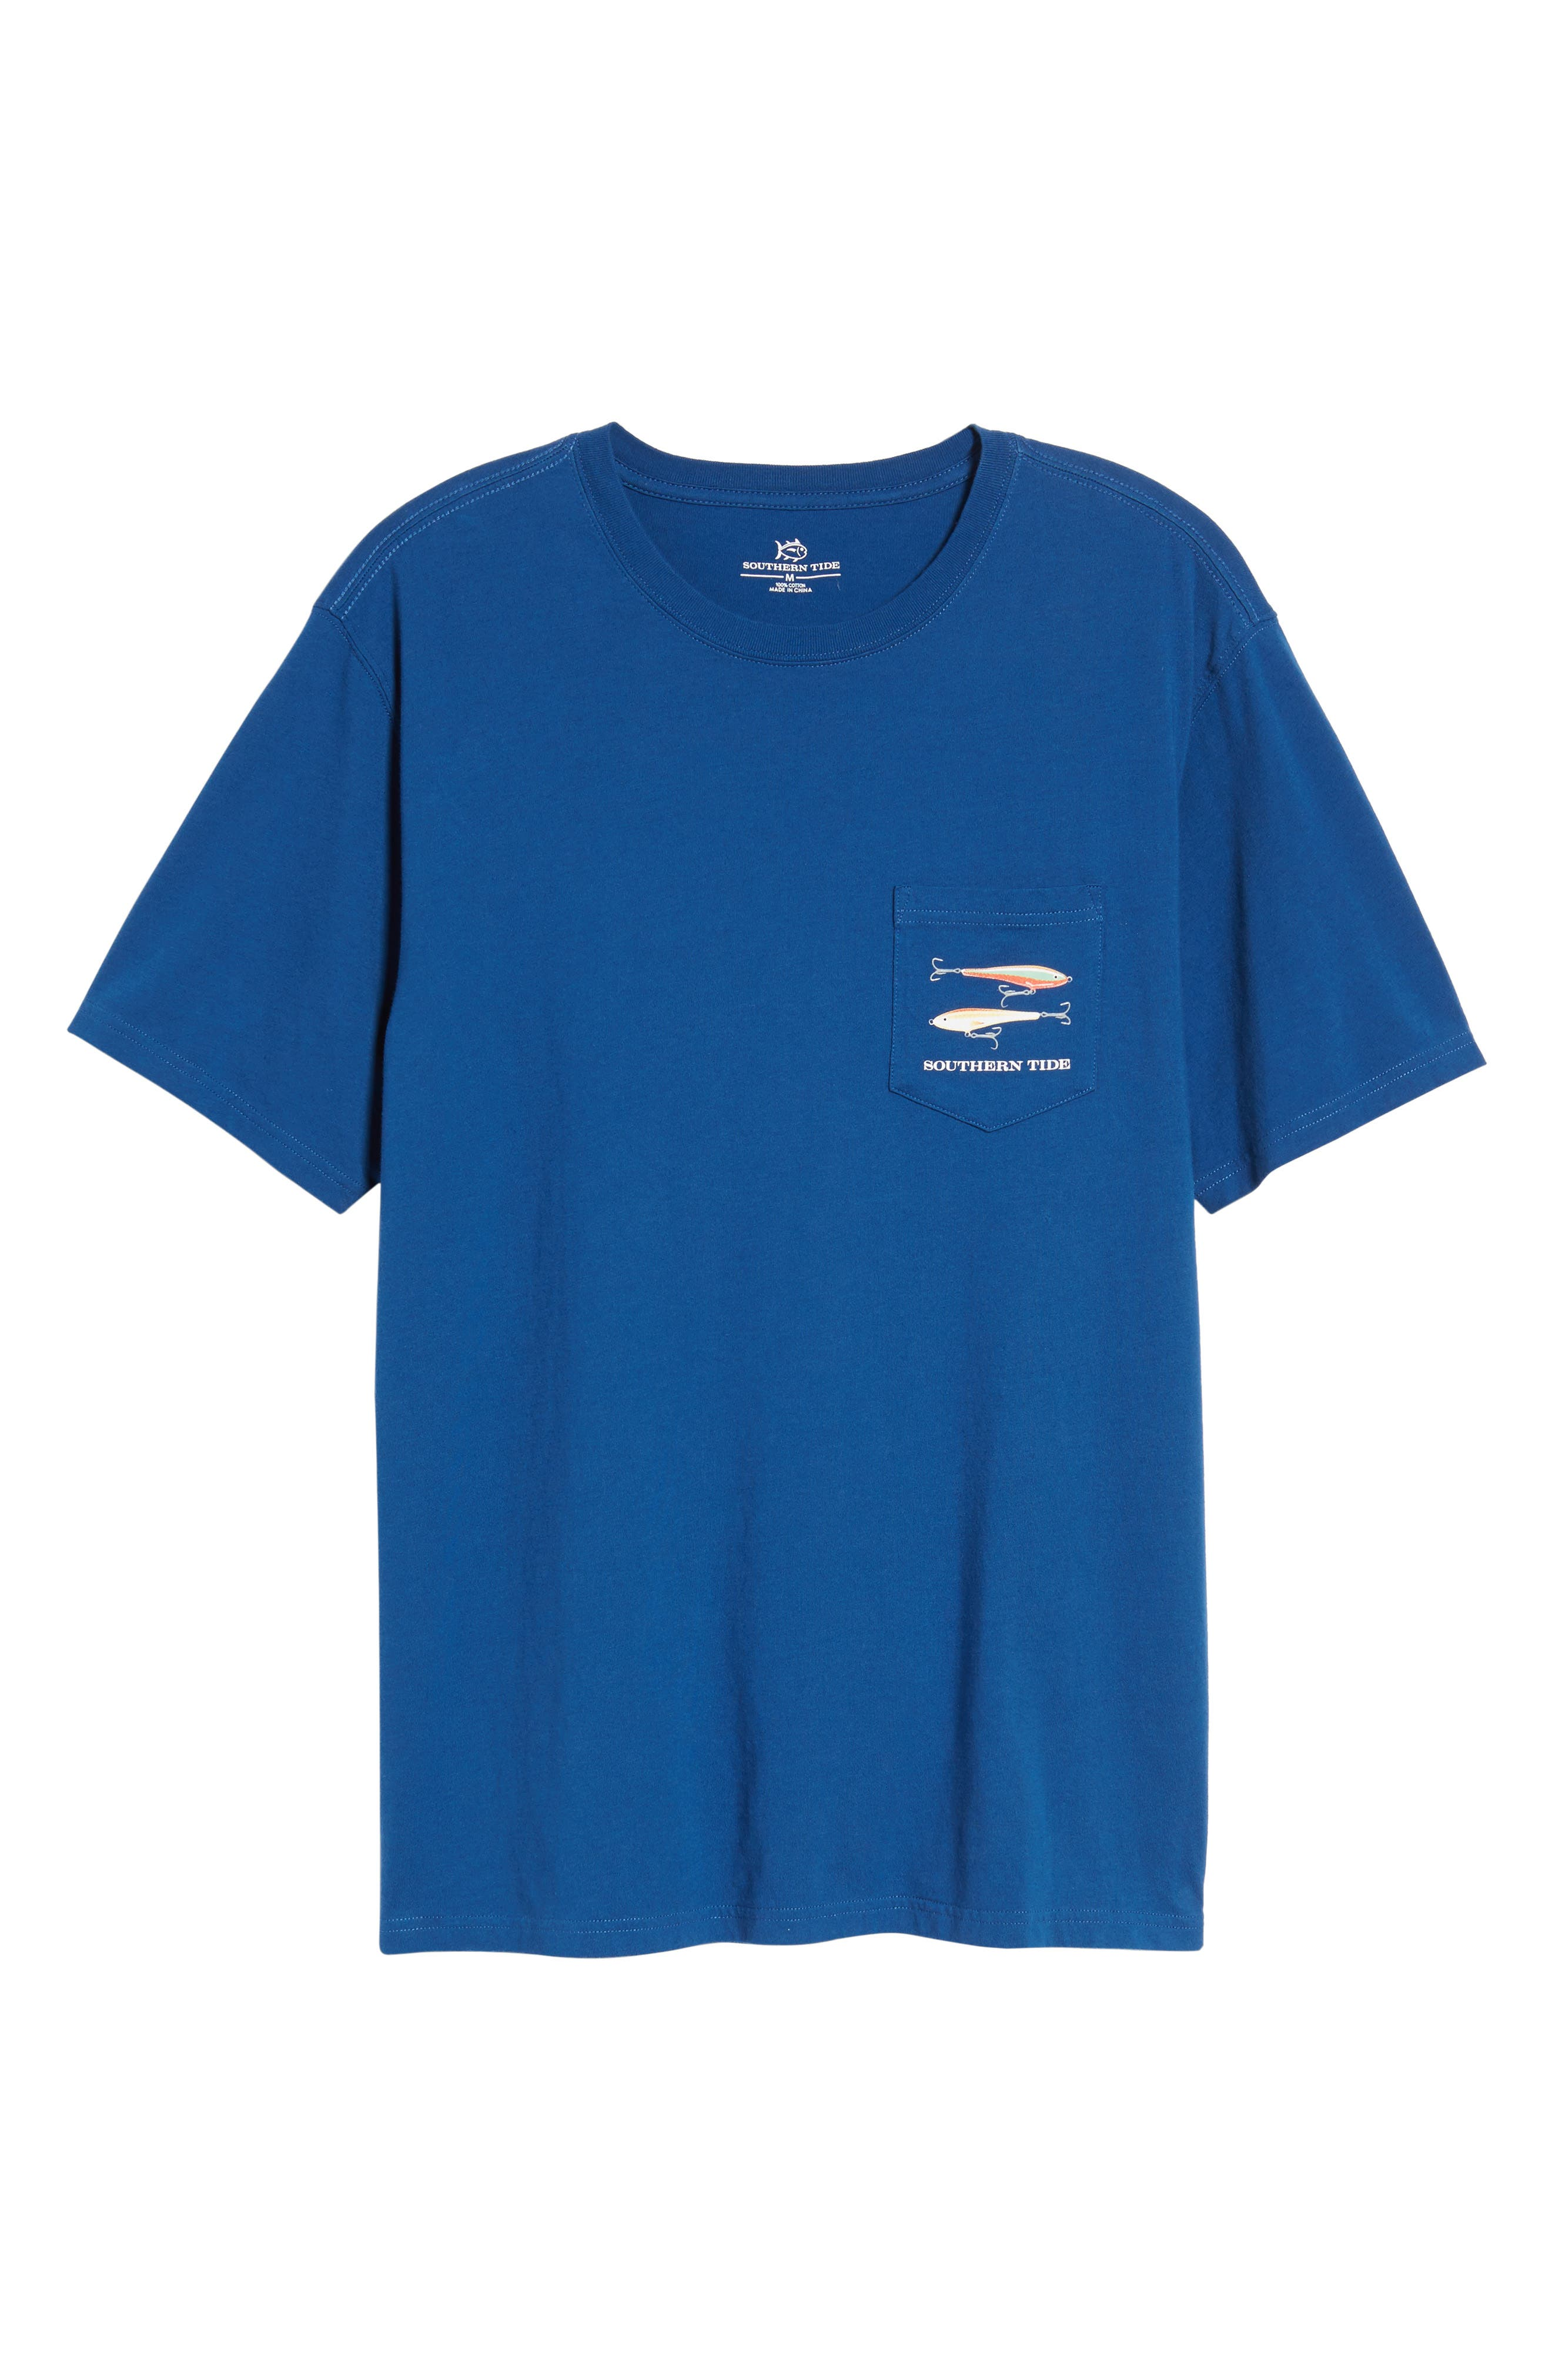 Hanging Out Regular Fit T-Shirt,                             Alternate thumbnail 6, color,                             440